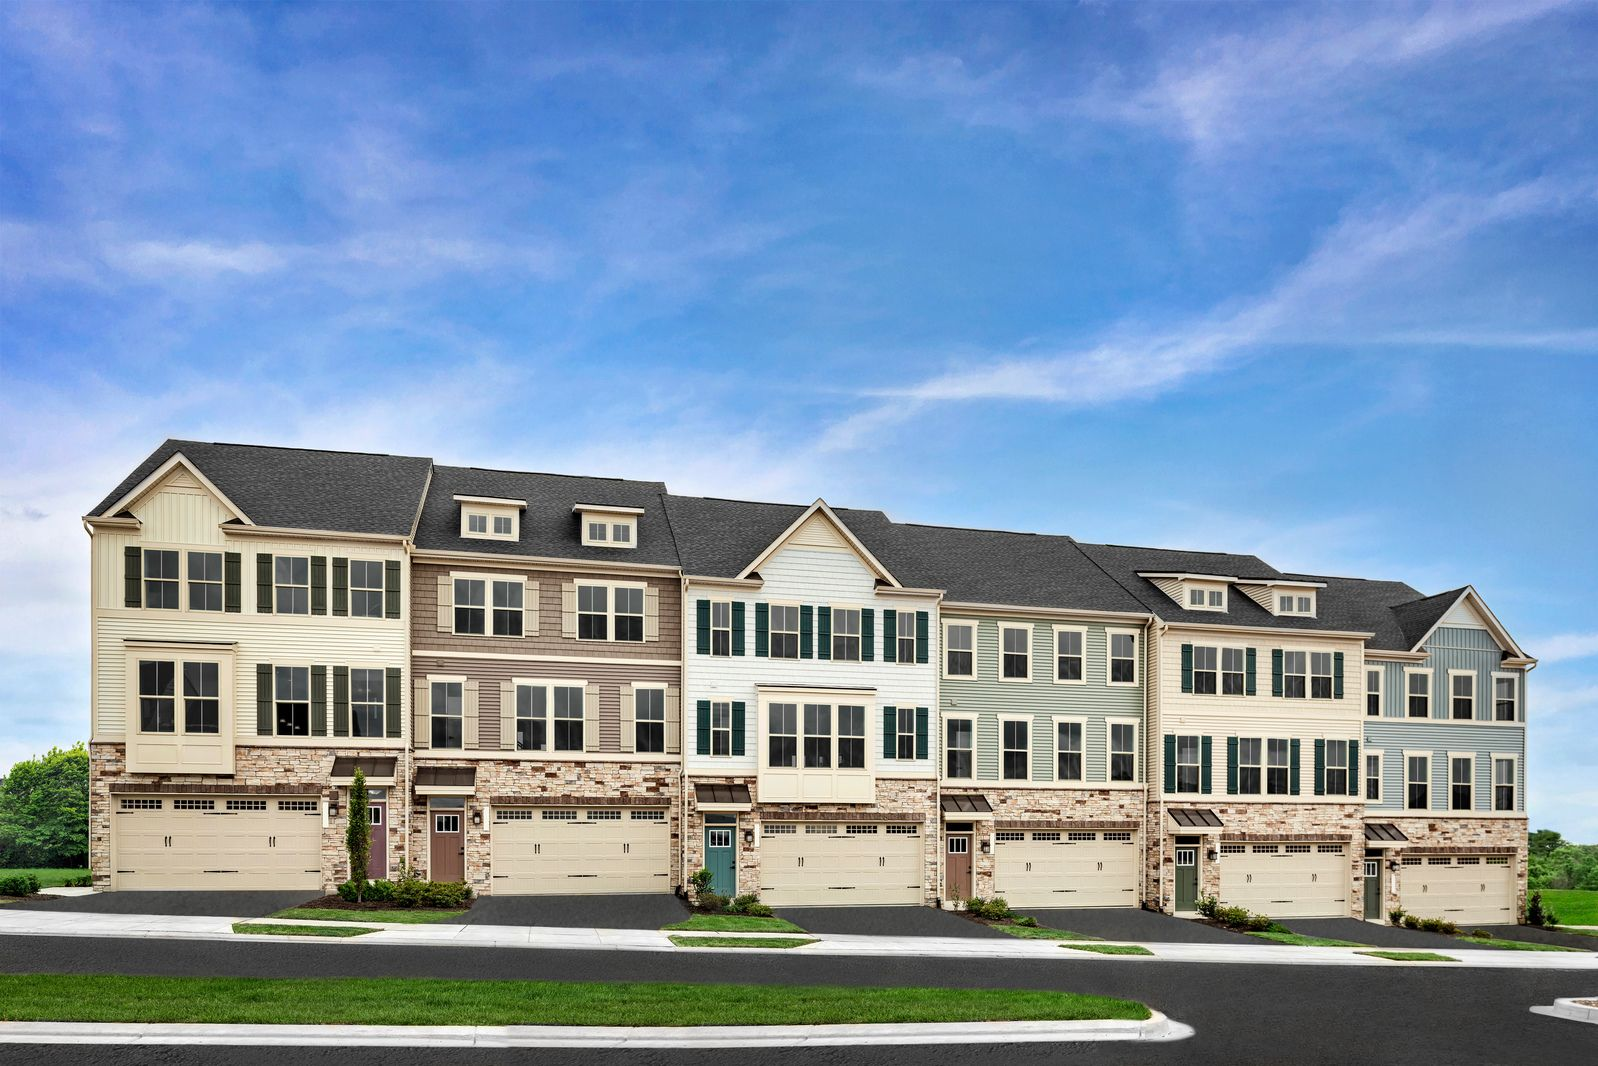 WELCOME TO HARRINGTON TERRACE TOWNHOMES IN FREDERICK, MD!:Enjoy beautiful mountain views and live in a convenient location with no city taxes! Largest and widest townhome in Frederick with 2 car garage and backyard!Schedule an appointment today!